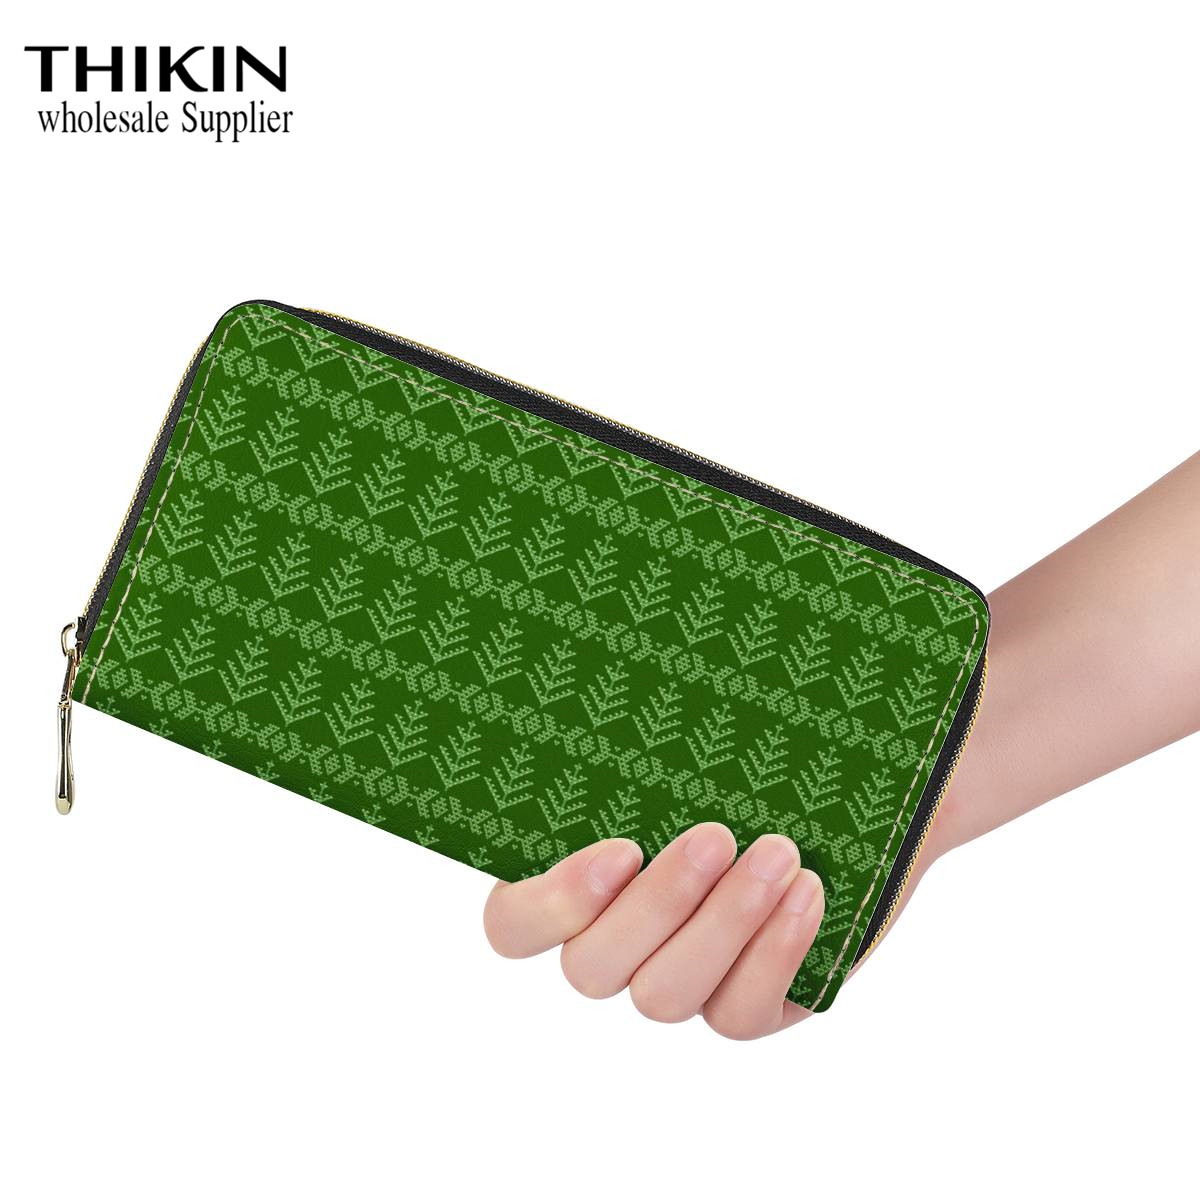 Thikin Reen Leaves Fawn Long Wallet